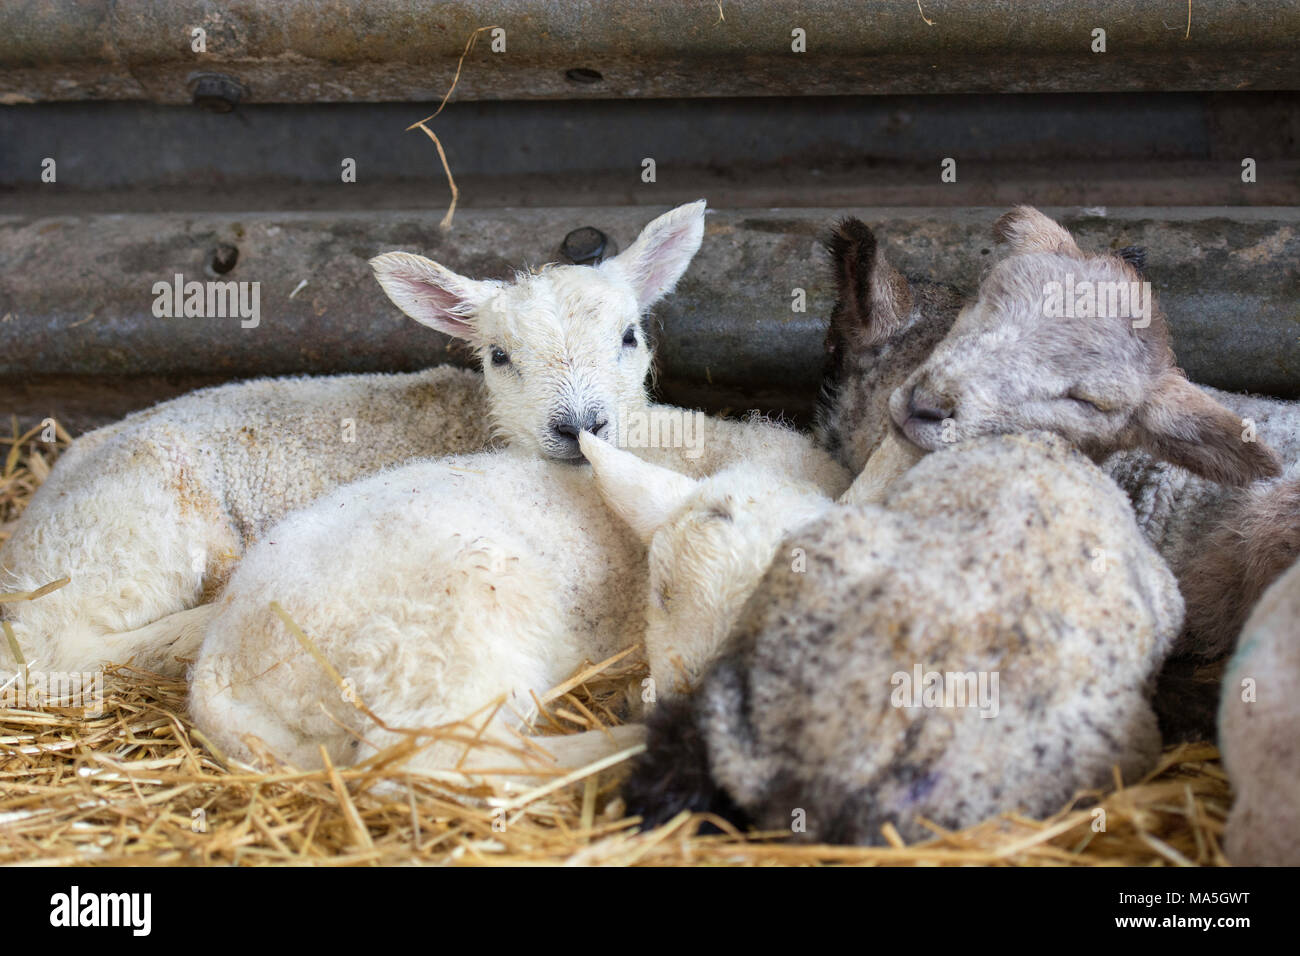 sleeping lambs huddled together in a barn - Stock Image